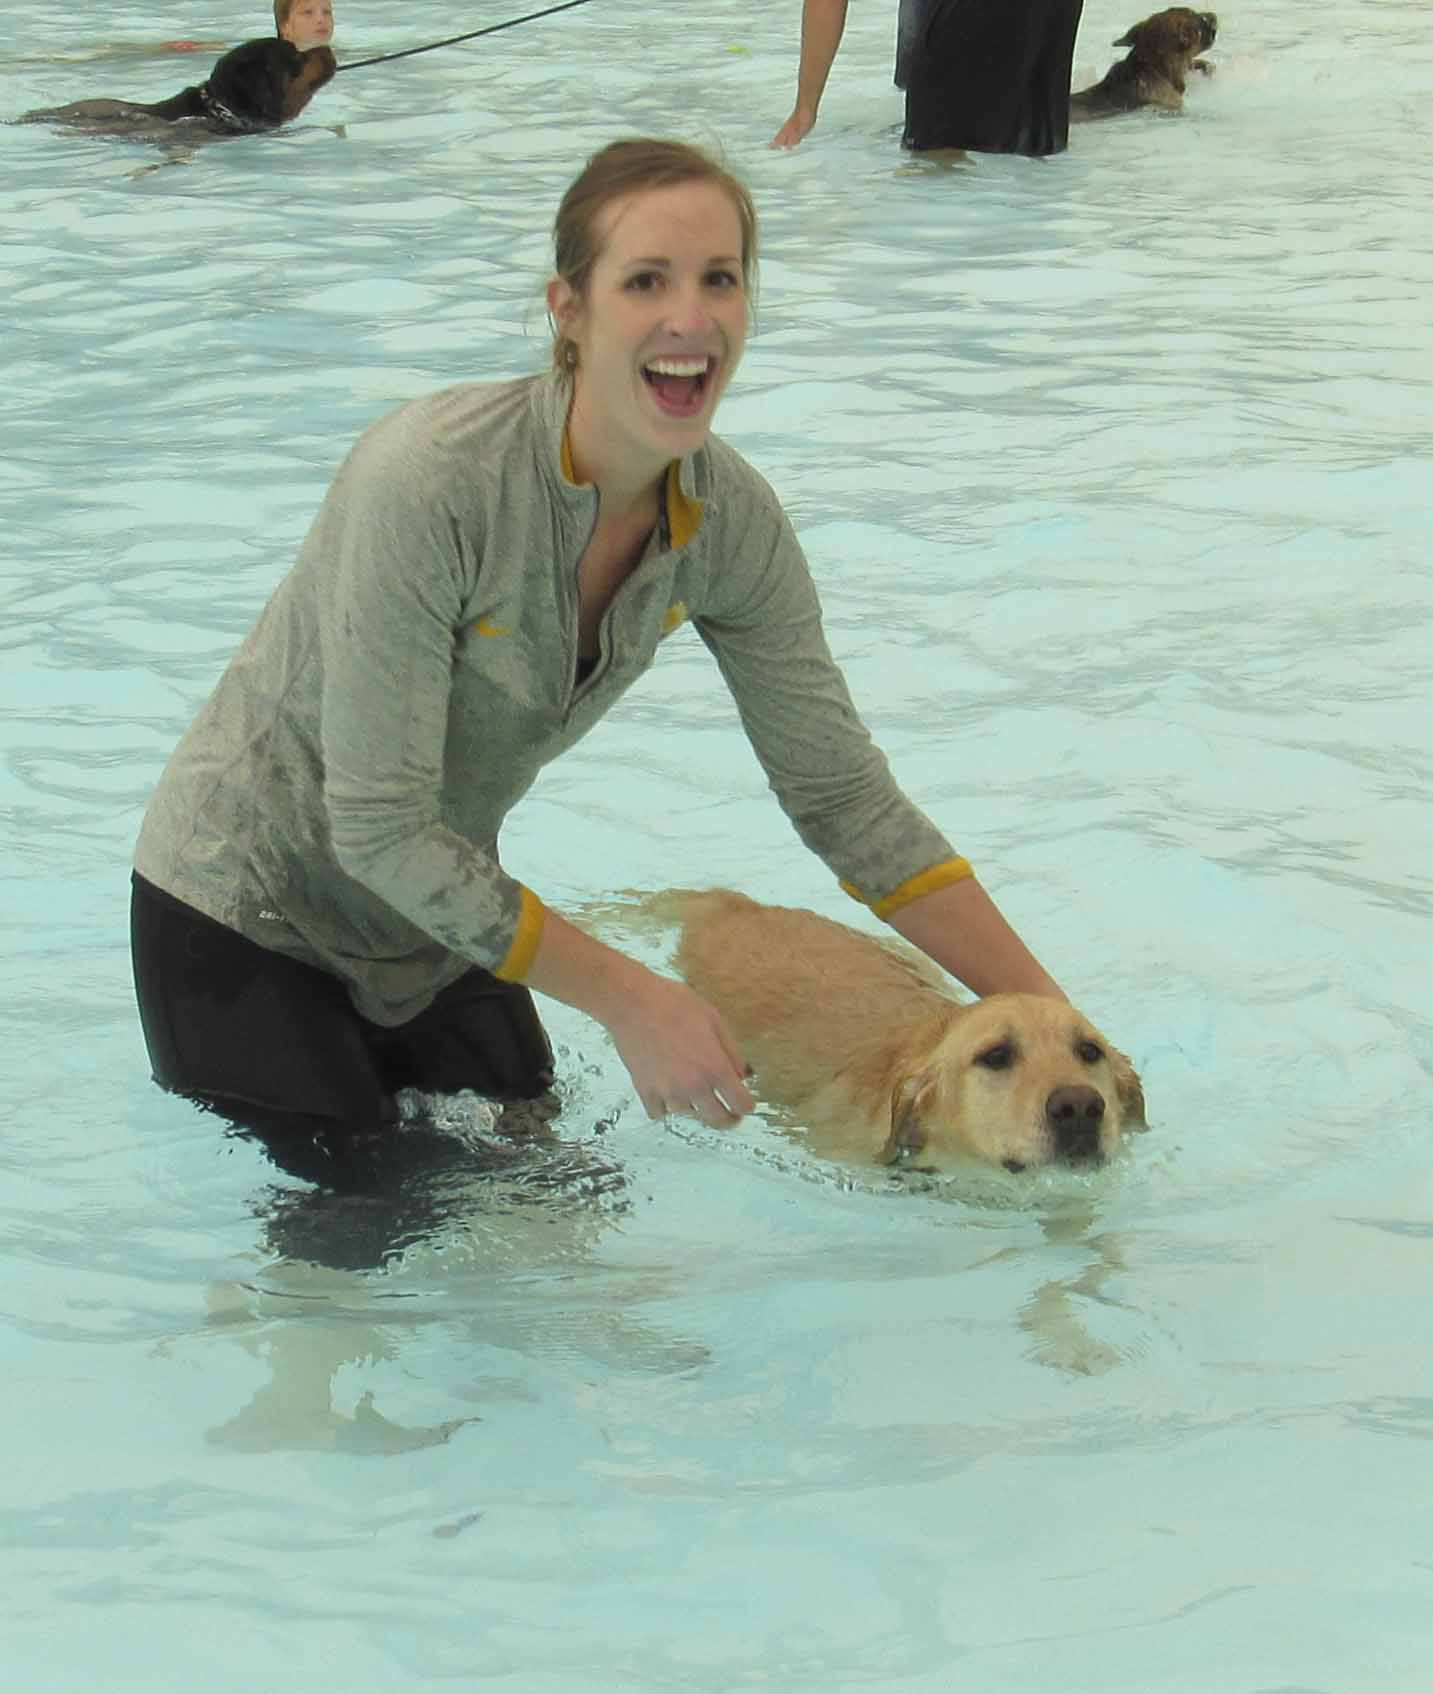 Caitlyn Miller of Monticello and her dog Jack enjoy a swim in the Monticello pool. (Photo by Kim Brooks)